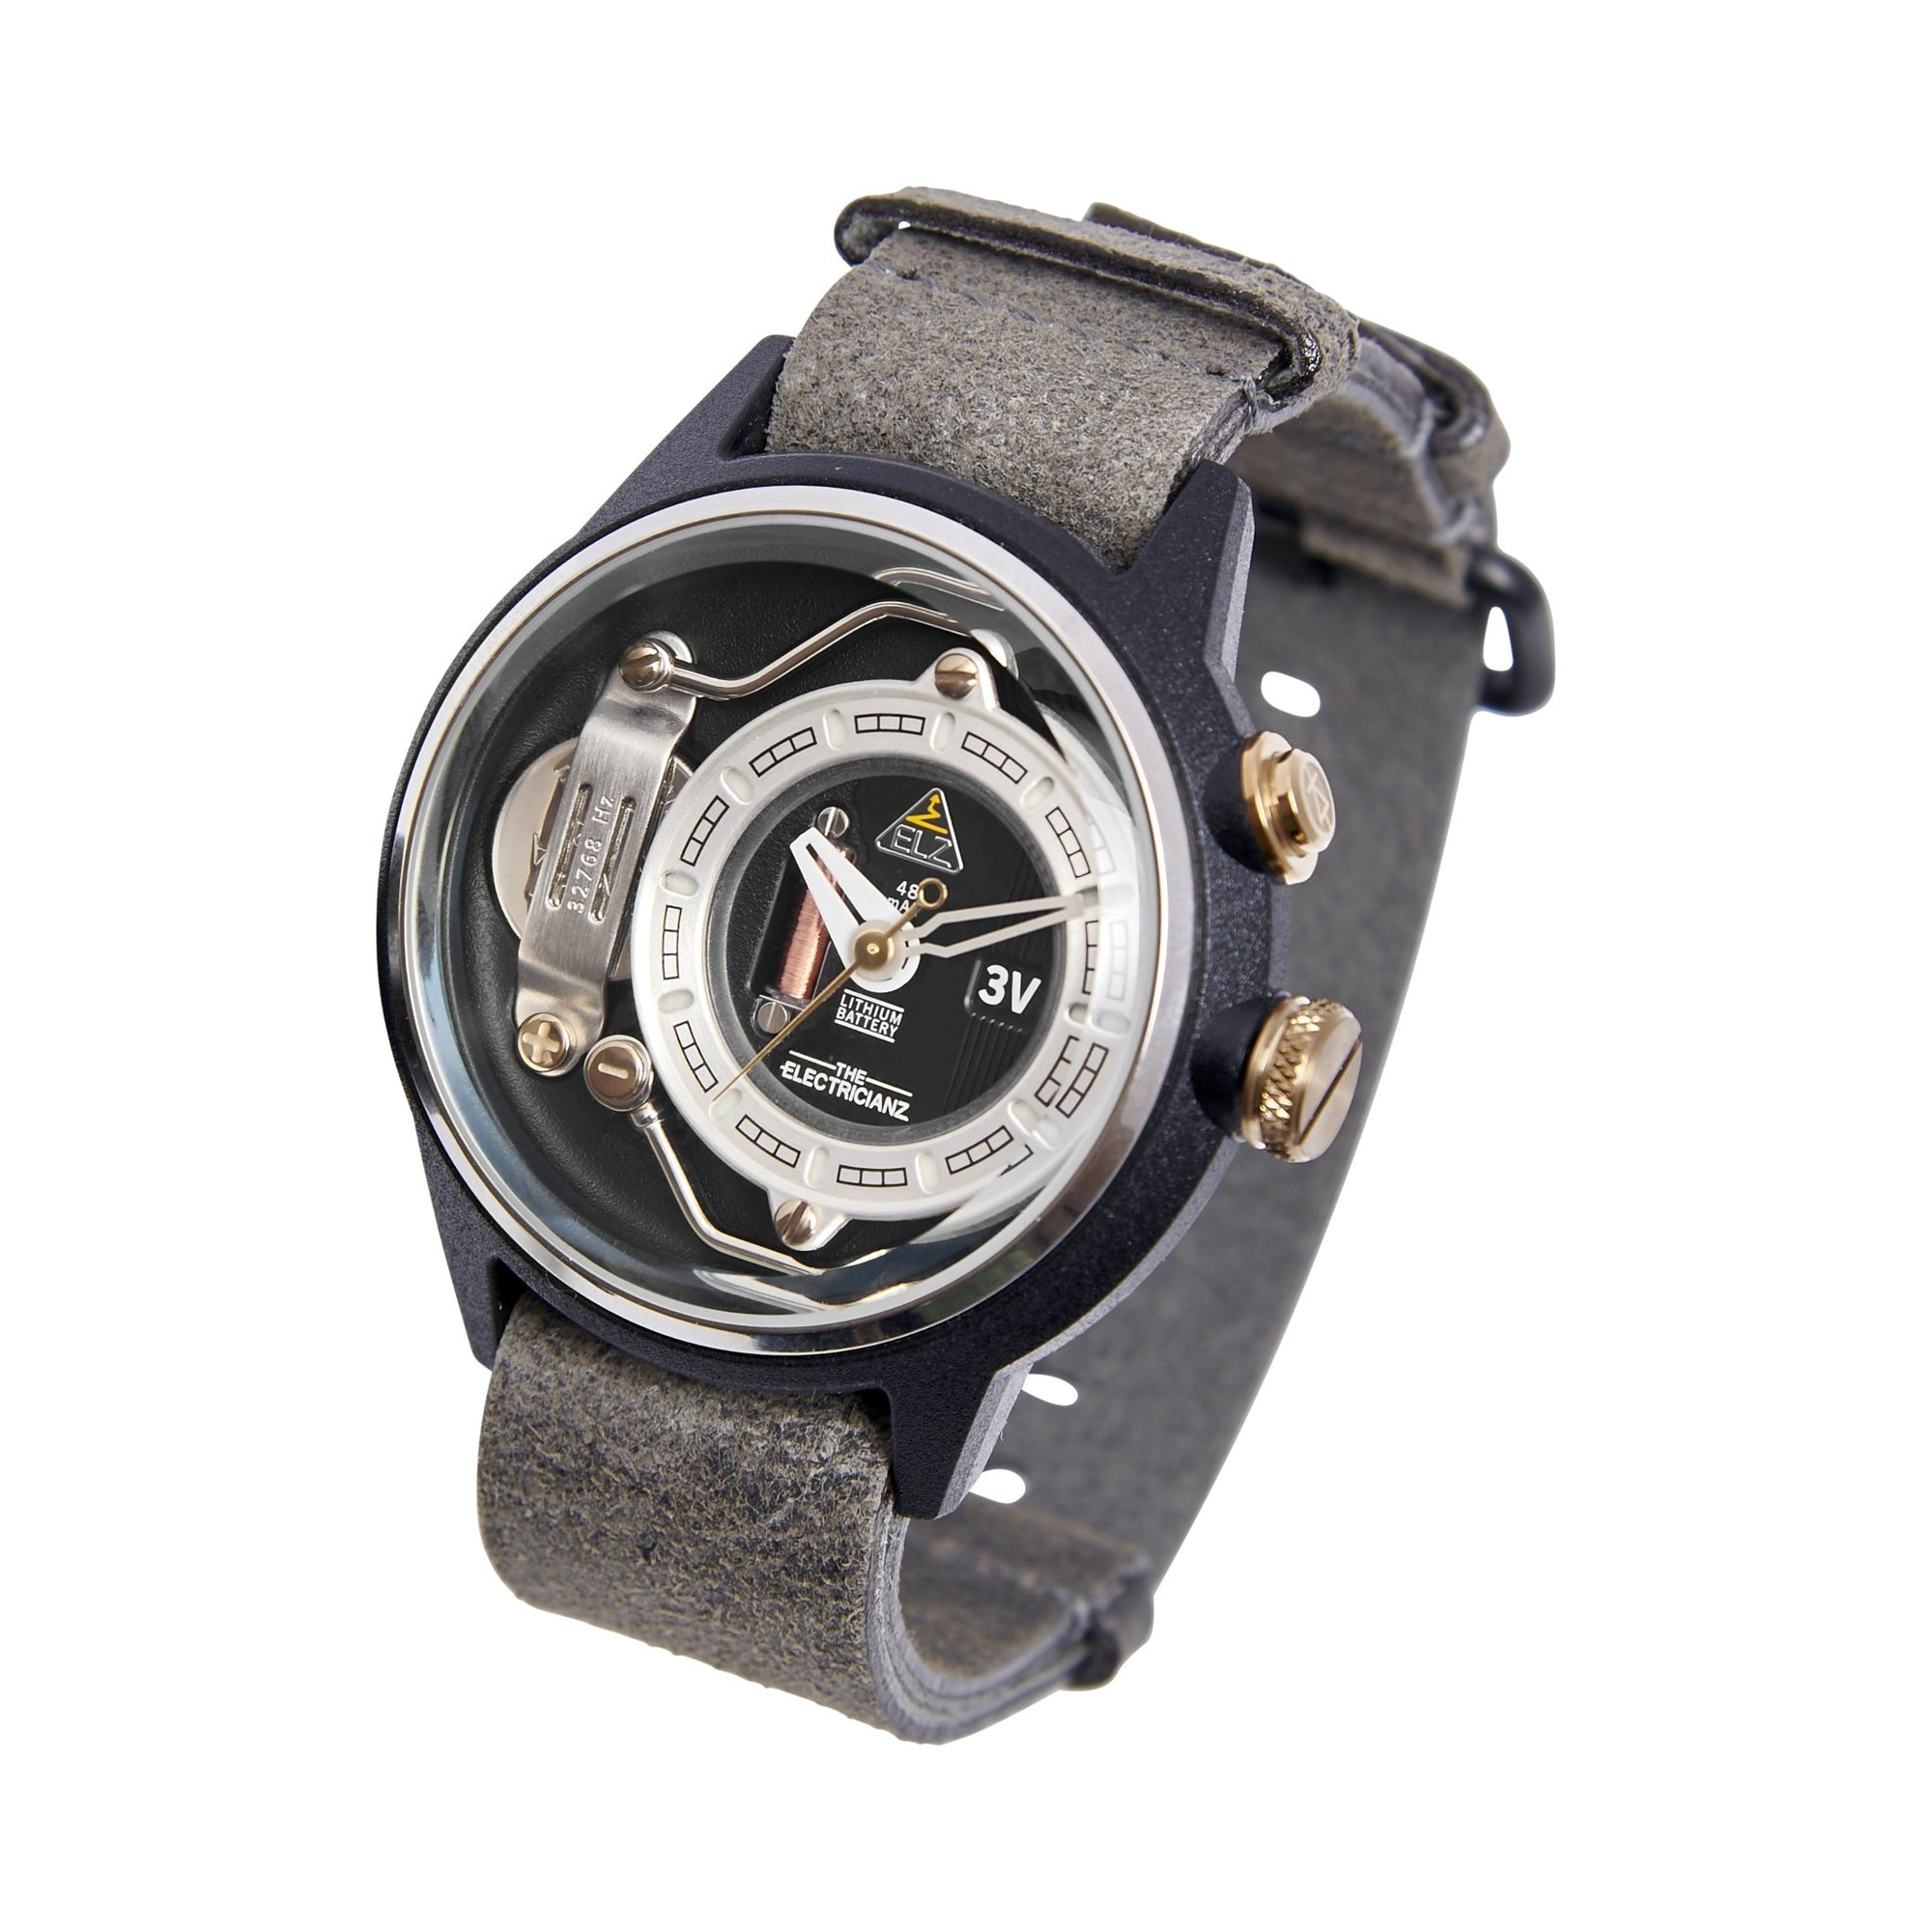 The Electricianz Nylon The Dresscode Greyz - Watches & Crystals